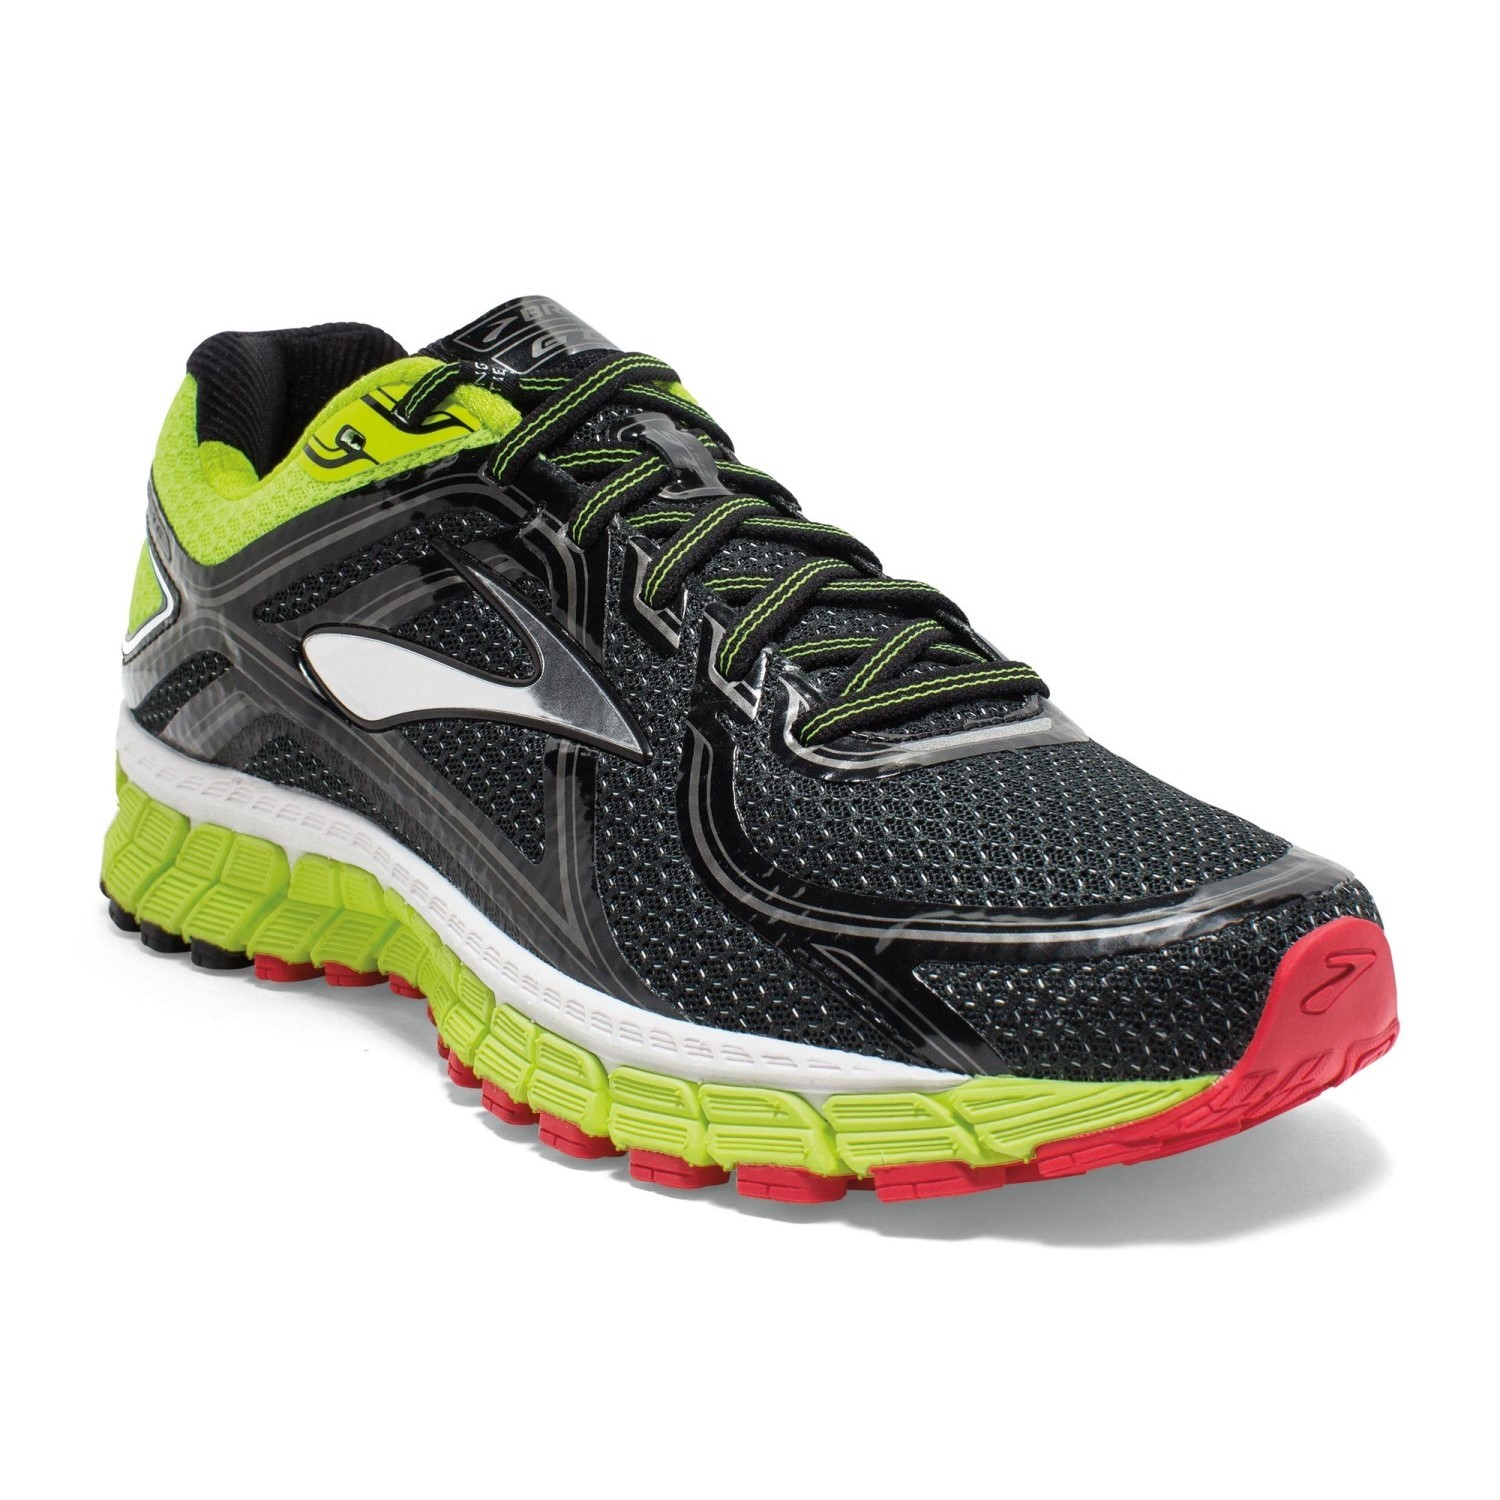 Brooks Adrenaline GTS 16 - Mens Running Shoes - Nightlife